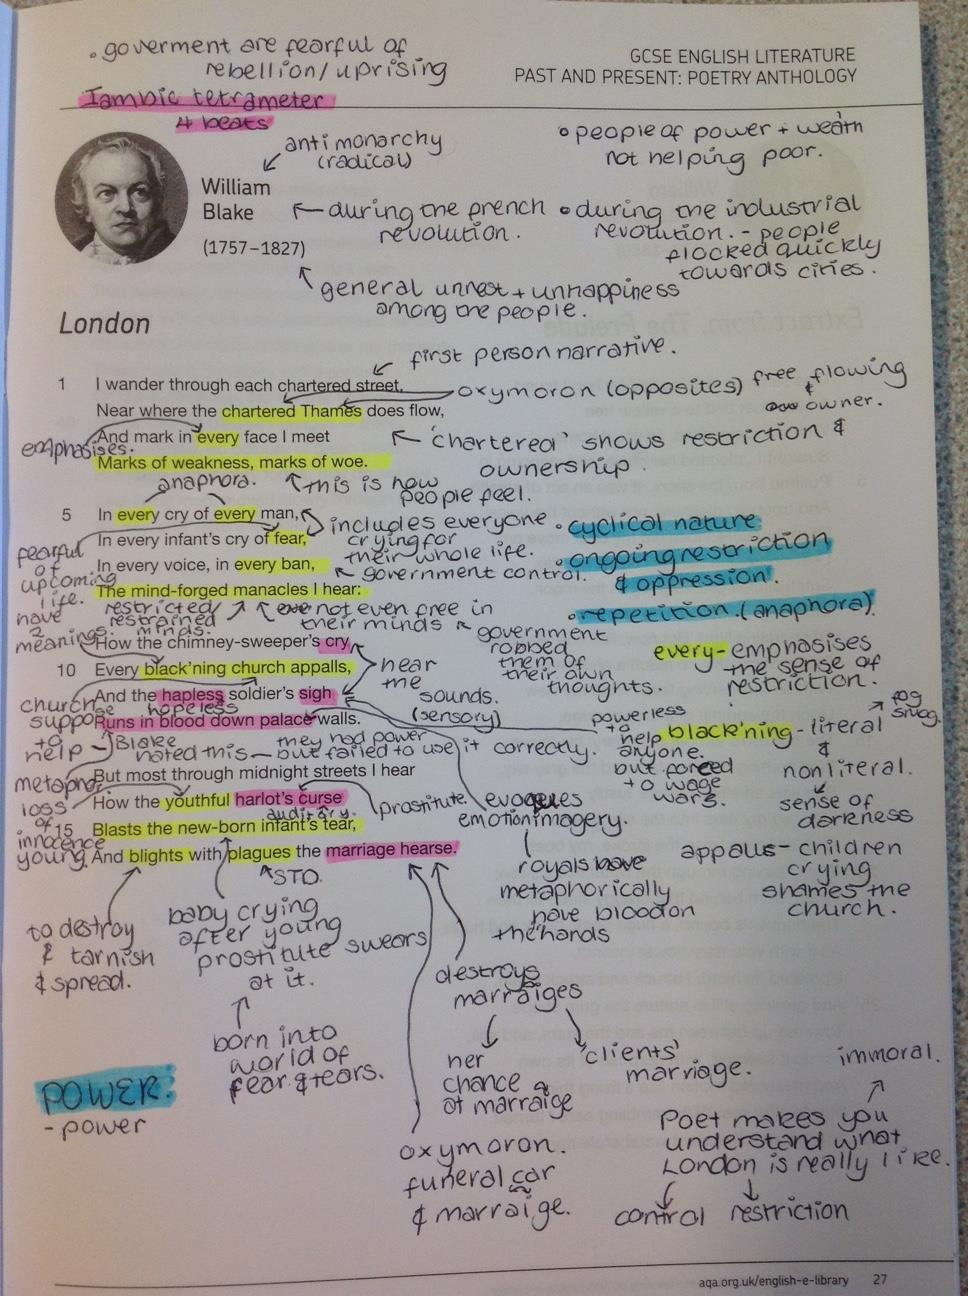 mr webb s online classroom annotation on london by william blake annotation on london by william blake